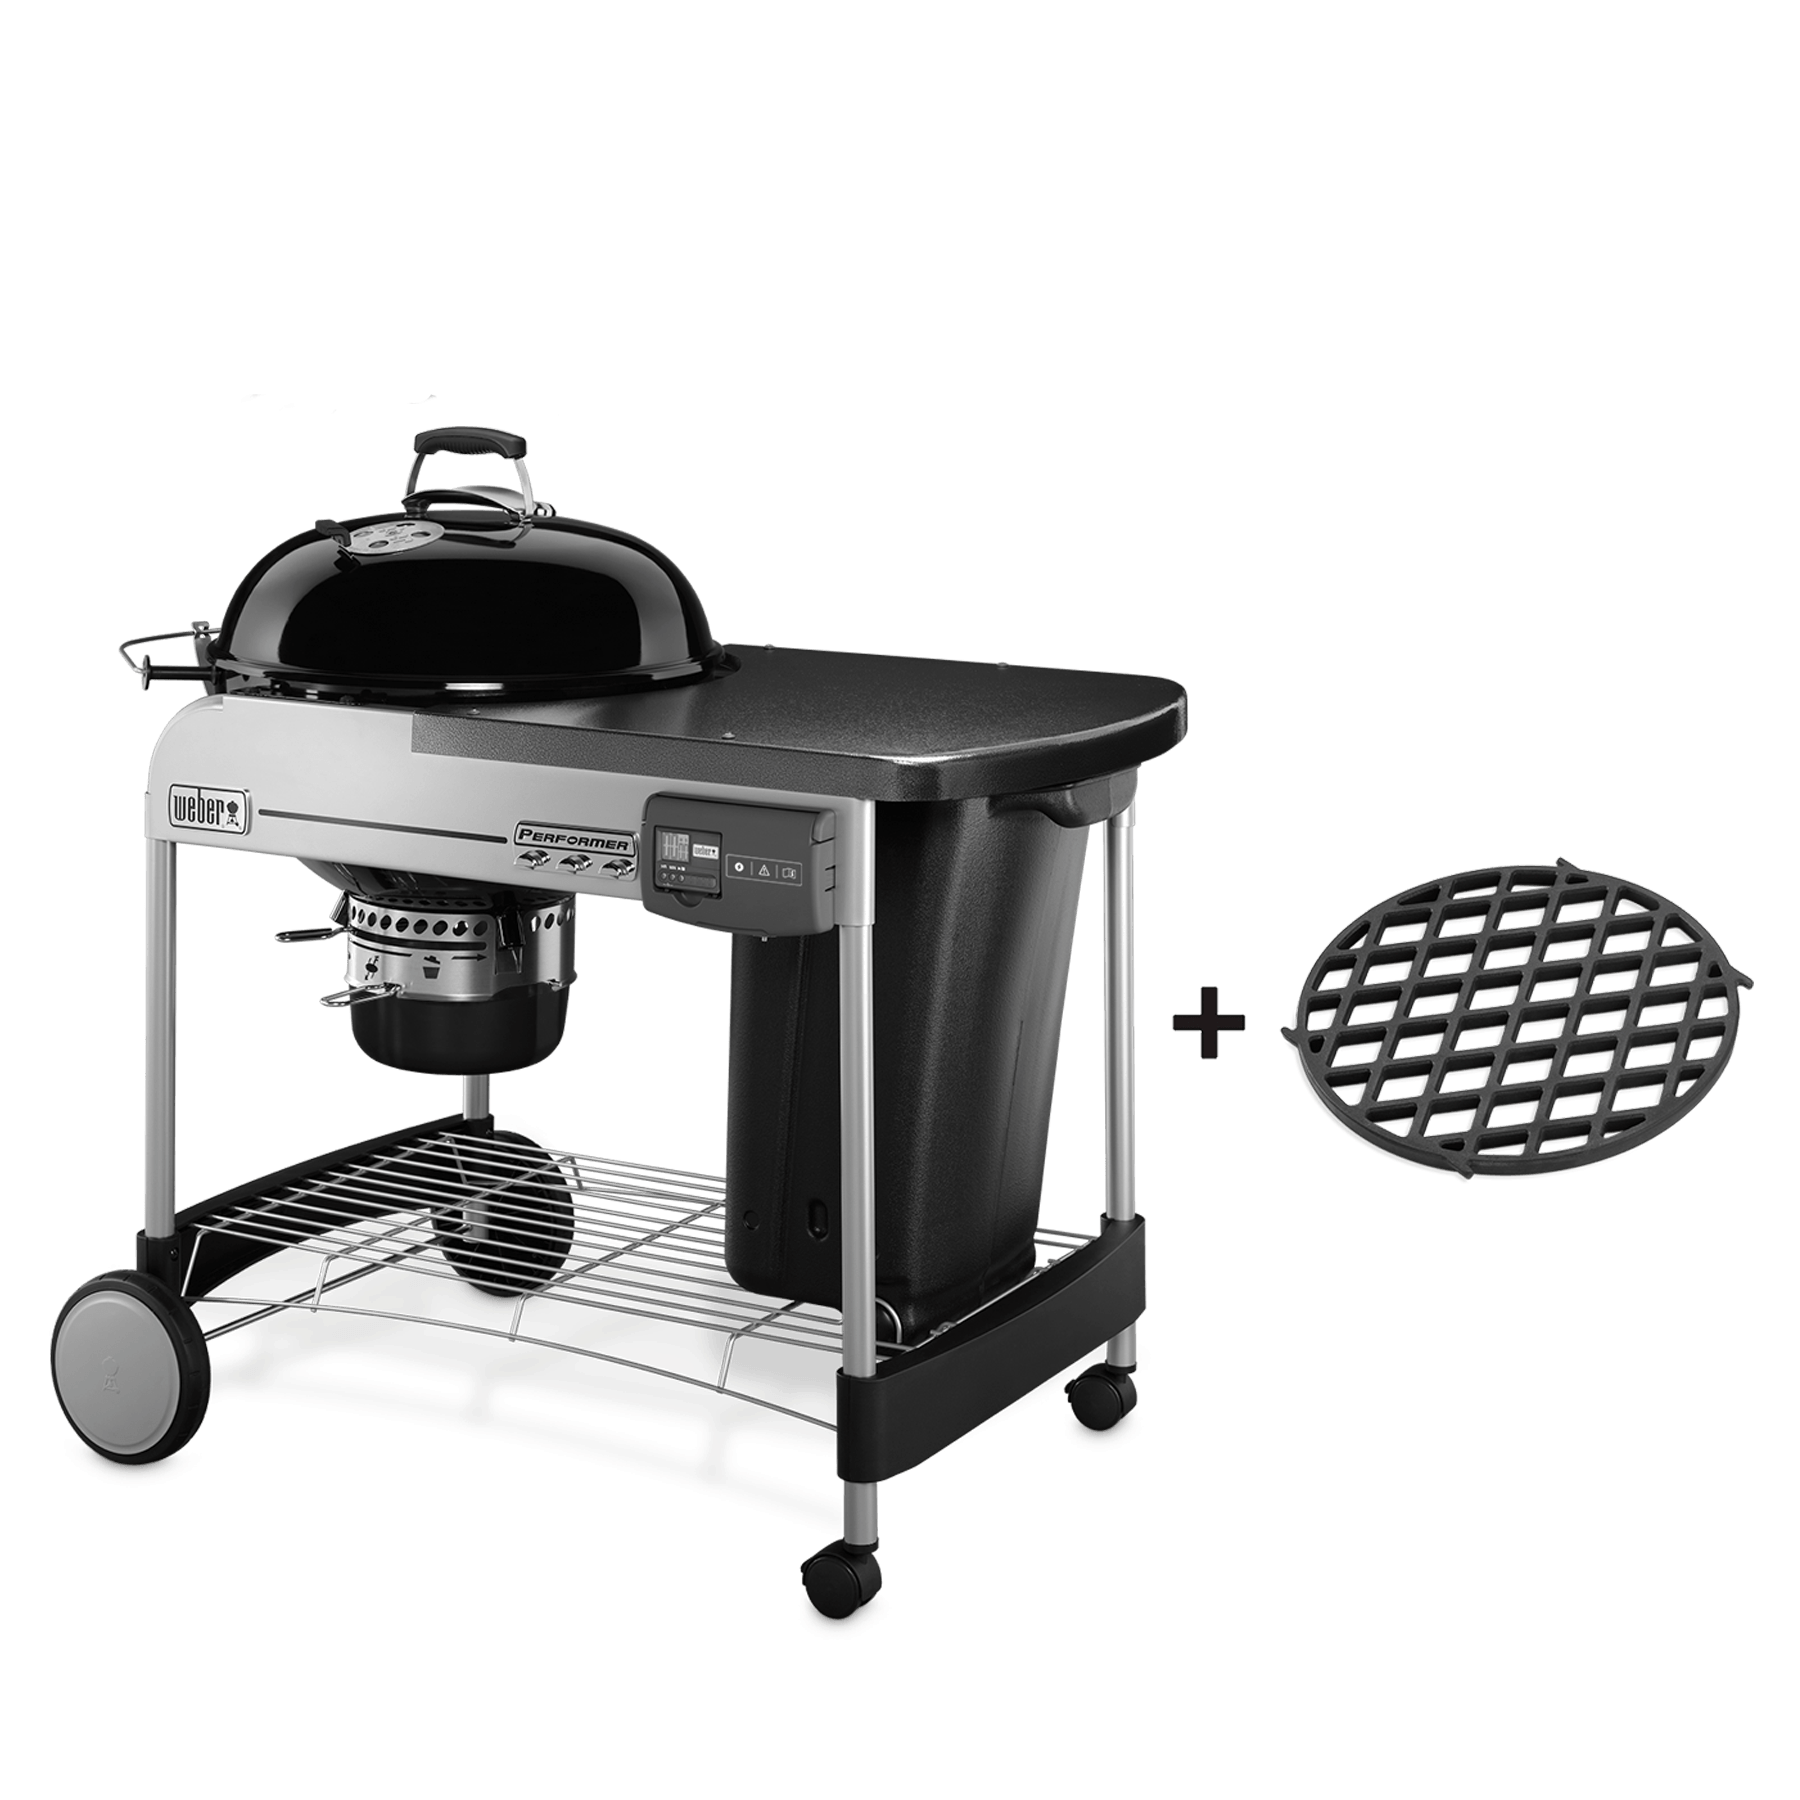 Barbecue à charbon Performer Deluxe Gourmet GBS Ø57 cm